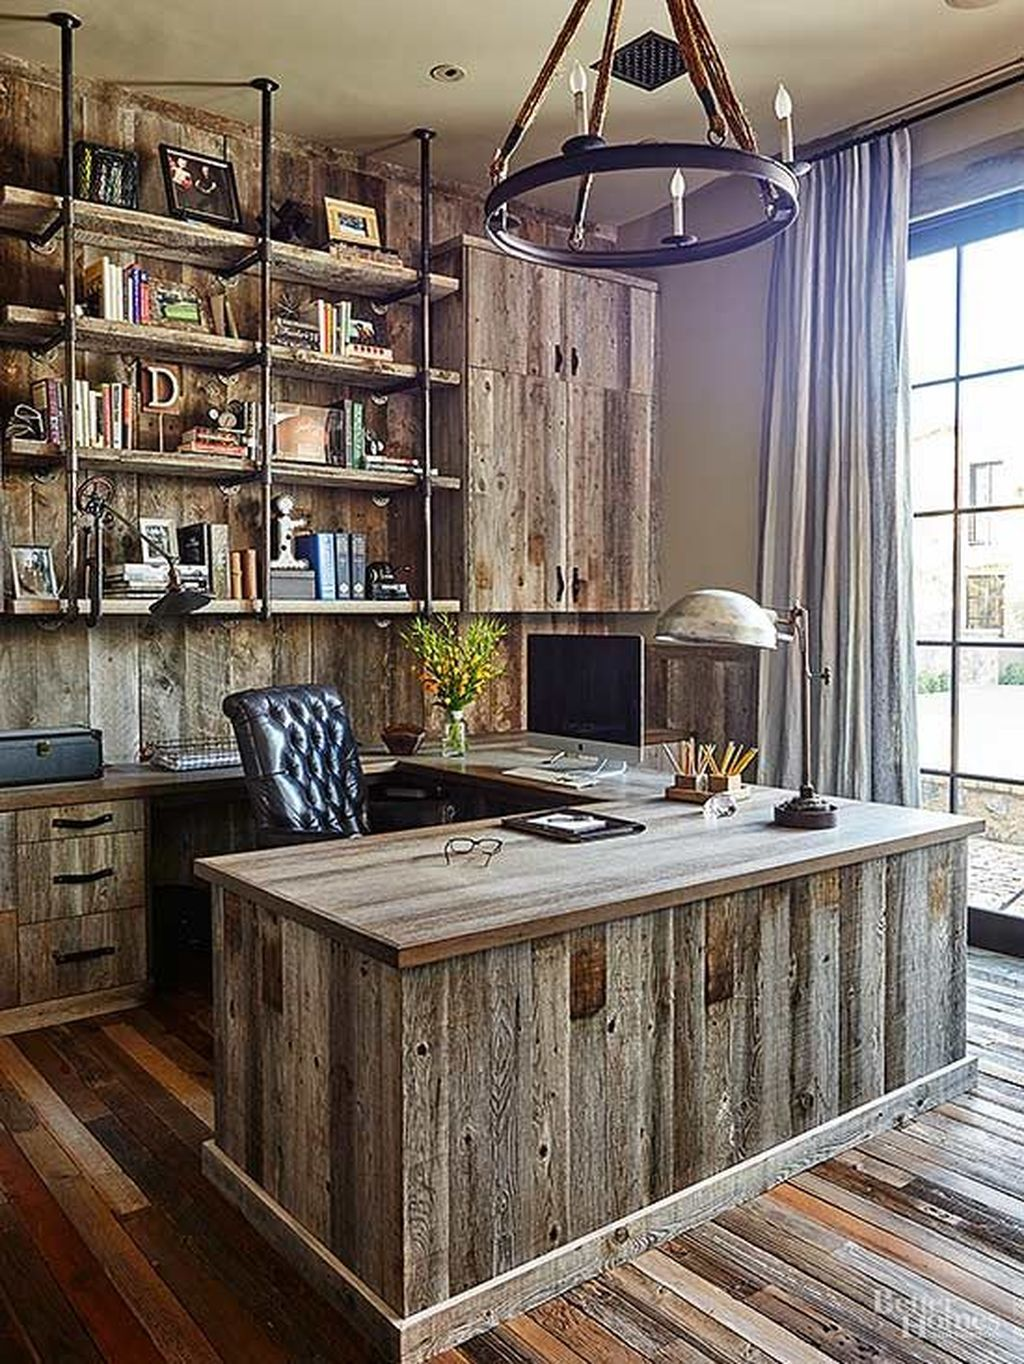 Office Design Ideas With Rustic Style